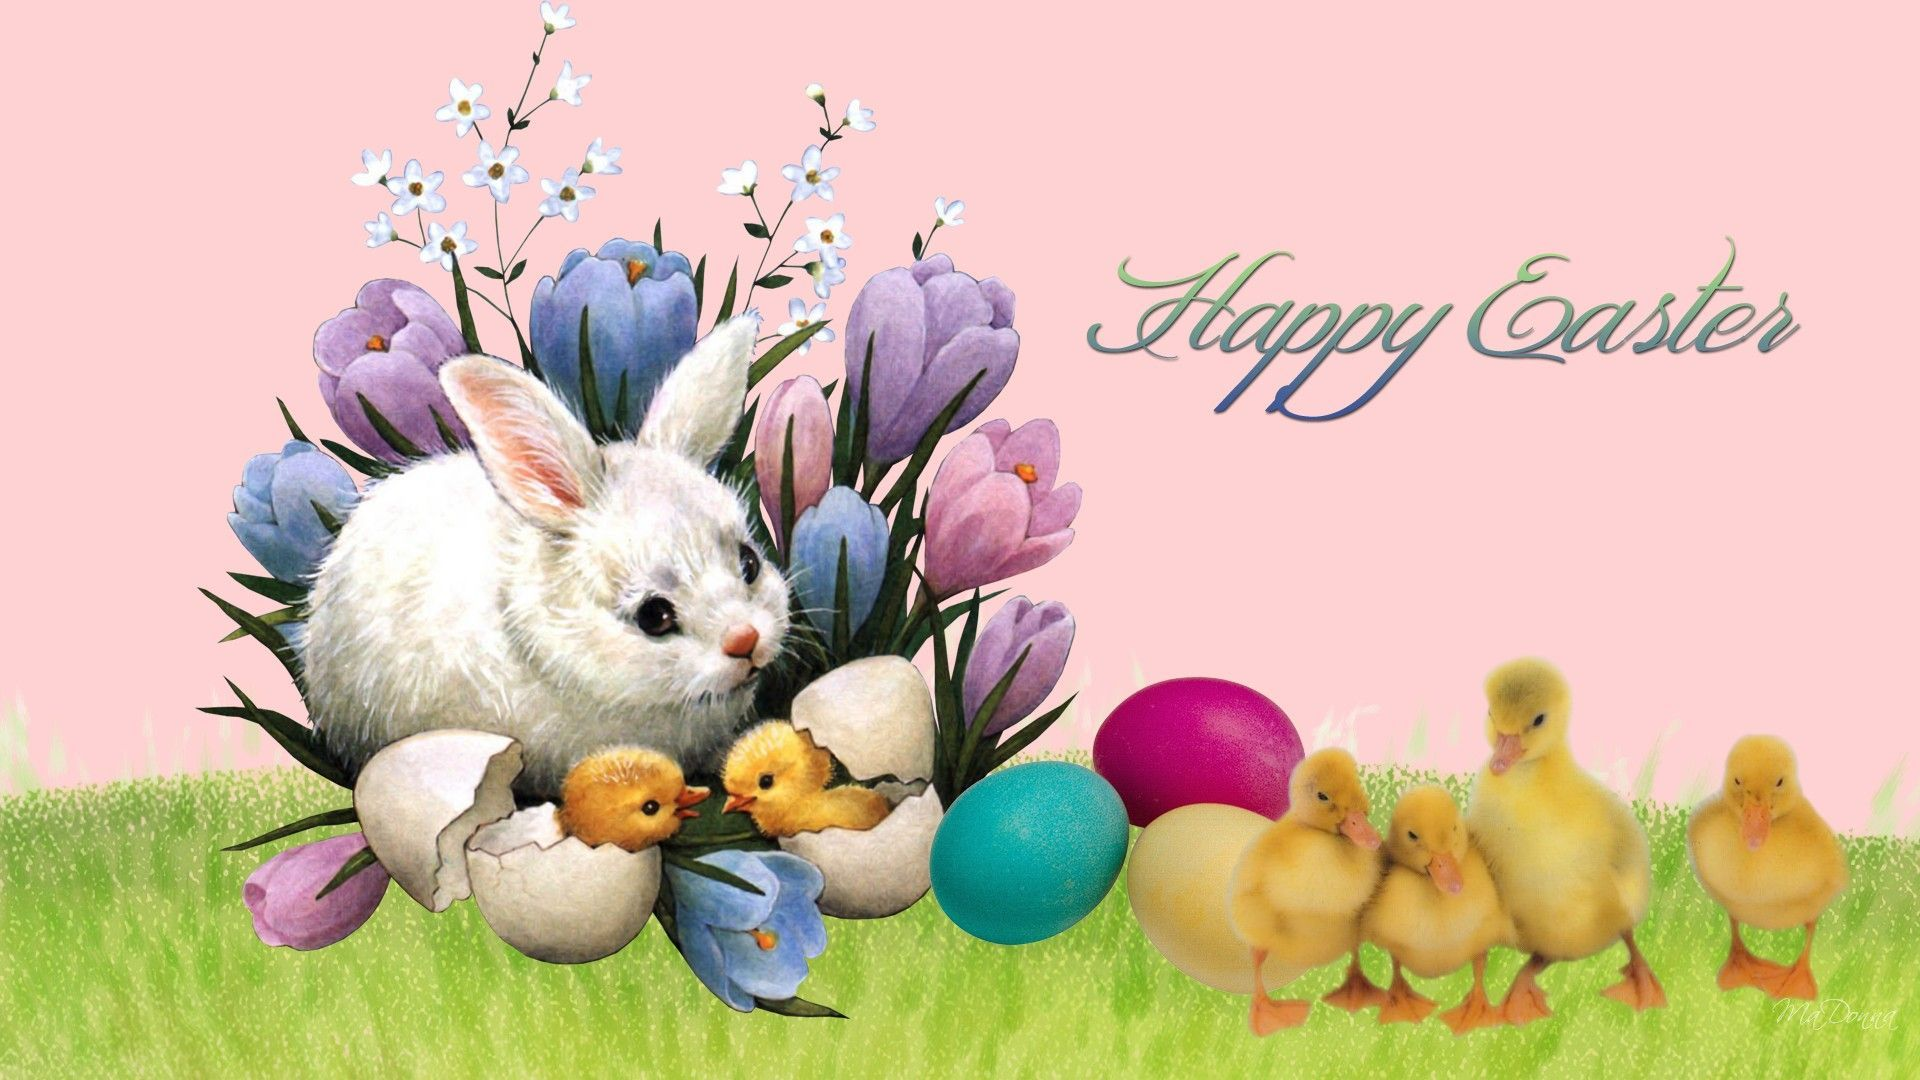 Easter Bunny Hd Wallpapers Free Happy Easter Wallpaper Easter Wallpaper Easter Bunny Images